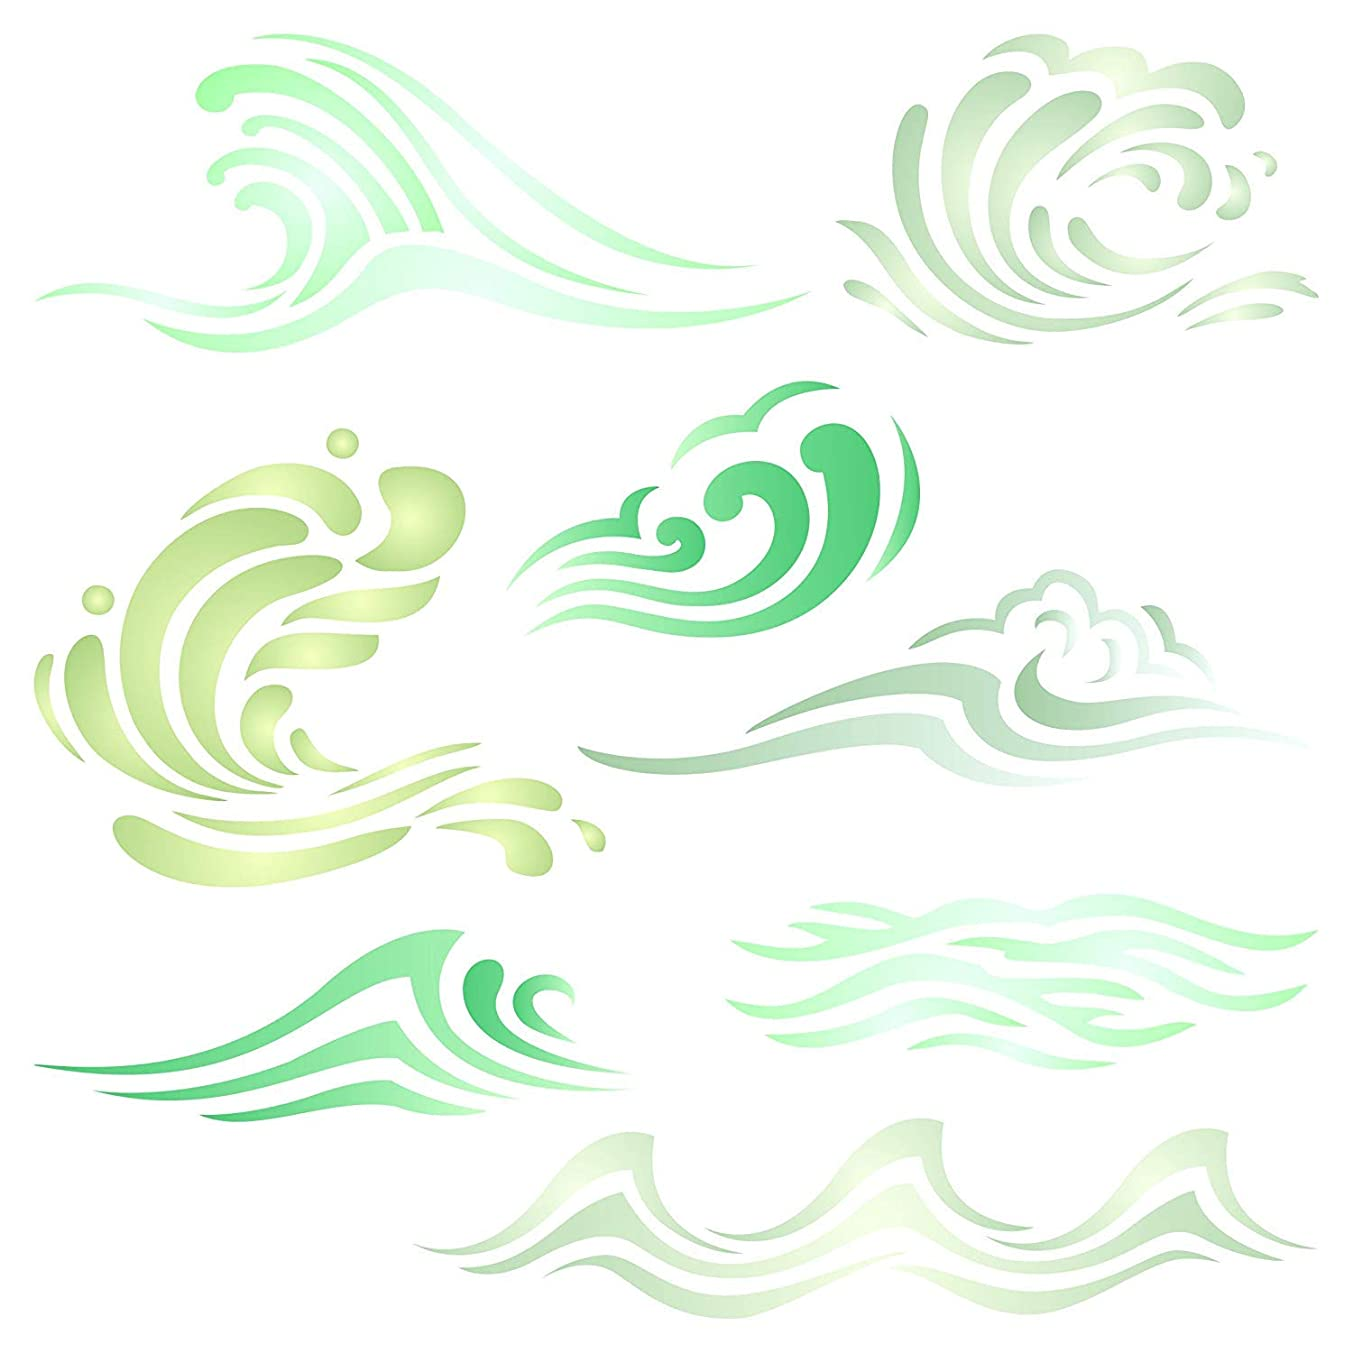 Waves Stencil - 4.5 x 4.5 inch (S) - Reusable Ocean Sea Wave Water Effect Wall Stencil Template - Use on Paper Projects Scrapbook Journal Walls Floors Fabric Furniture Glass Wood etc.